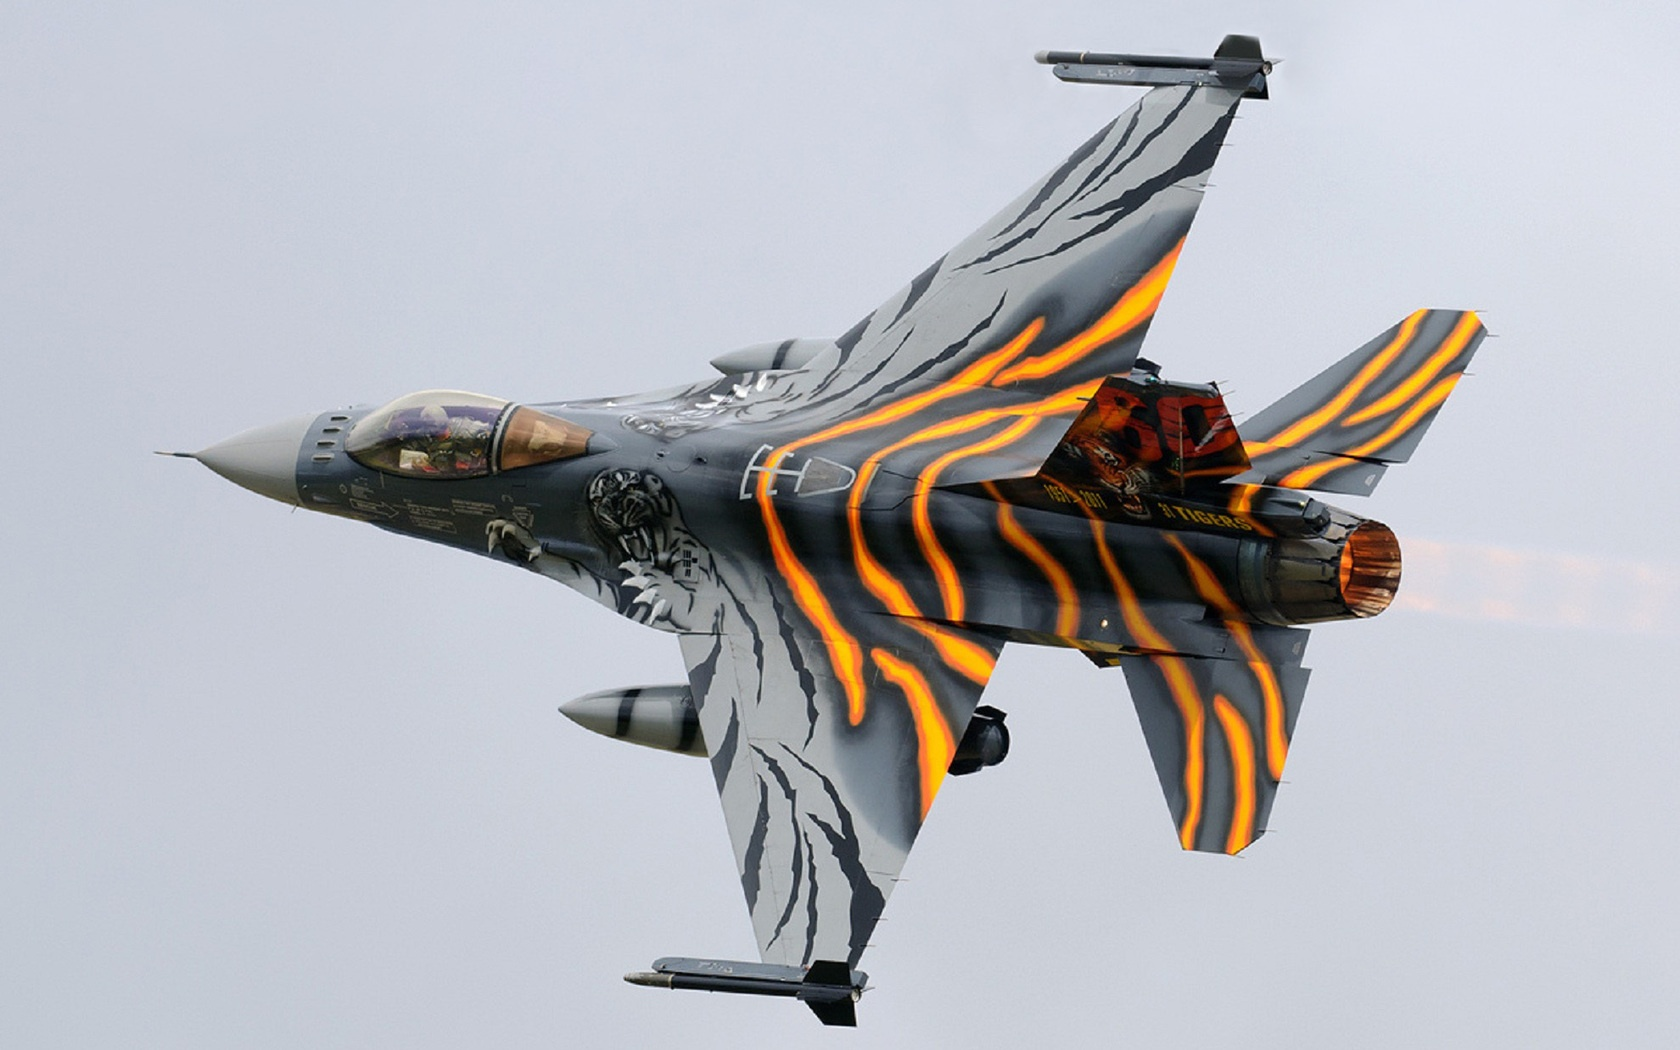 Tiger F 16 Fighting Falcon Wallpapers1680x1050346280 280